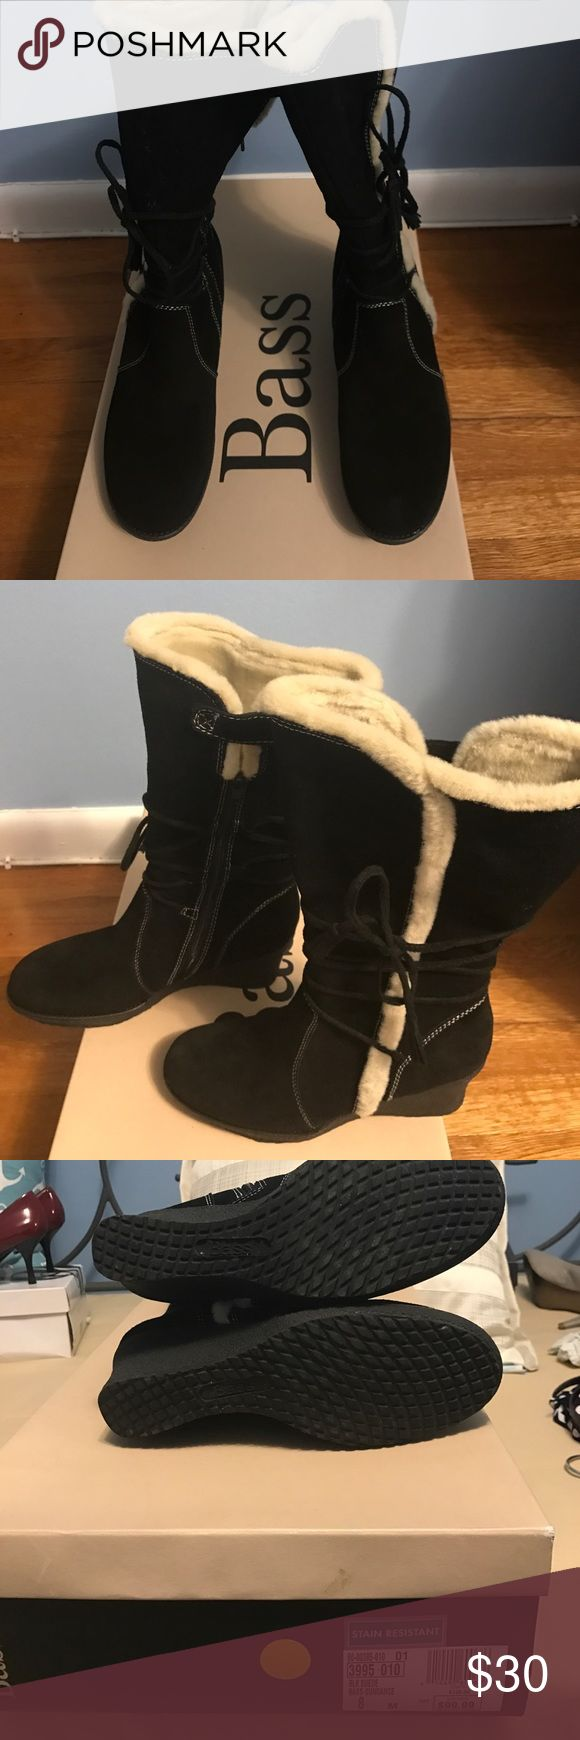 "Bass black suede wedge boots. Black suede wedge boots with zippers and ties.  2 1/2 "" wedge.  Fur lined and stain resistant. Super comfy too. Worn once. Bass Shoes Winter & Rain Boots"